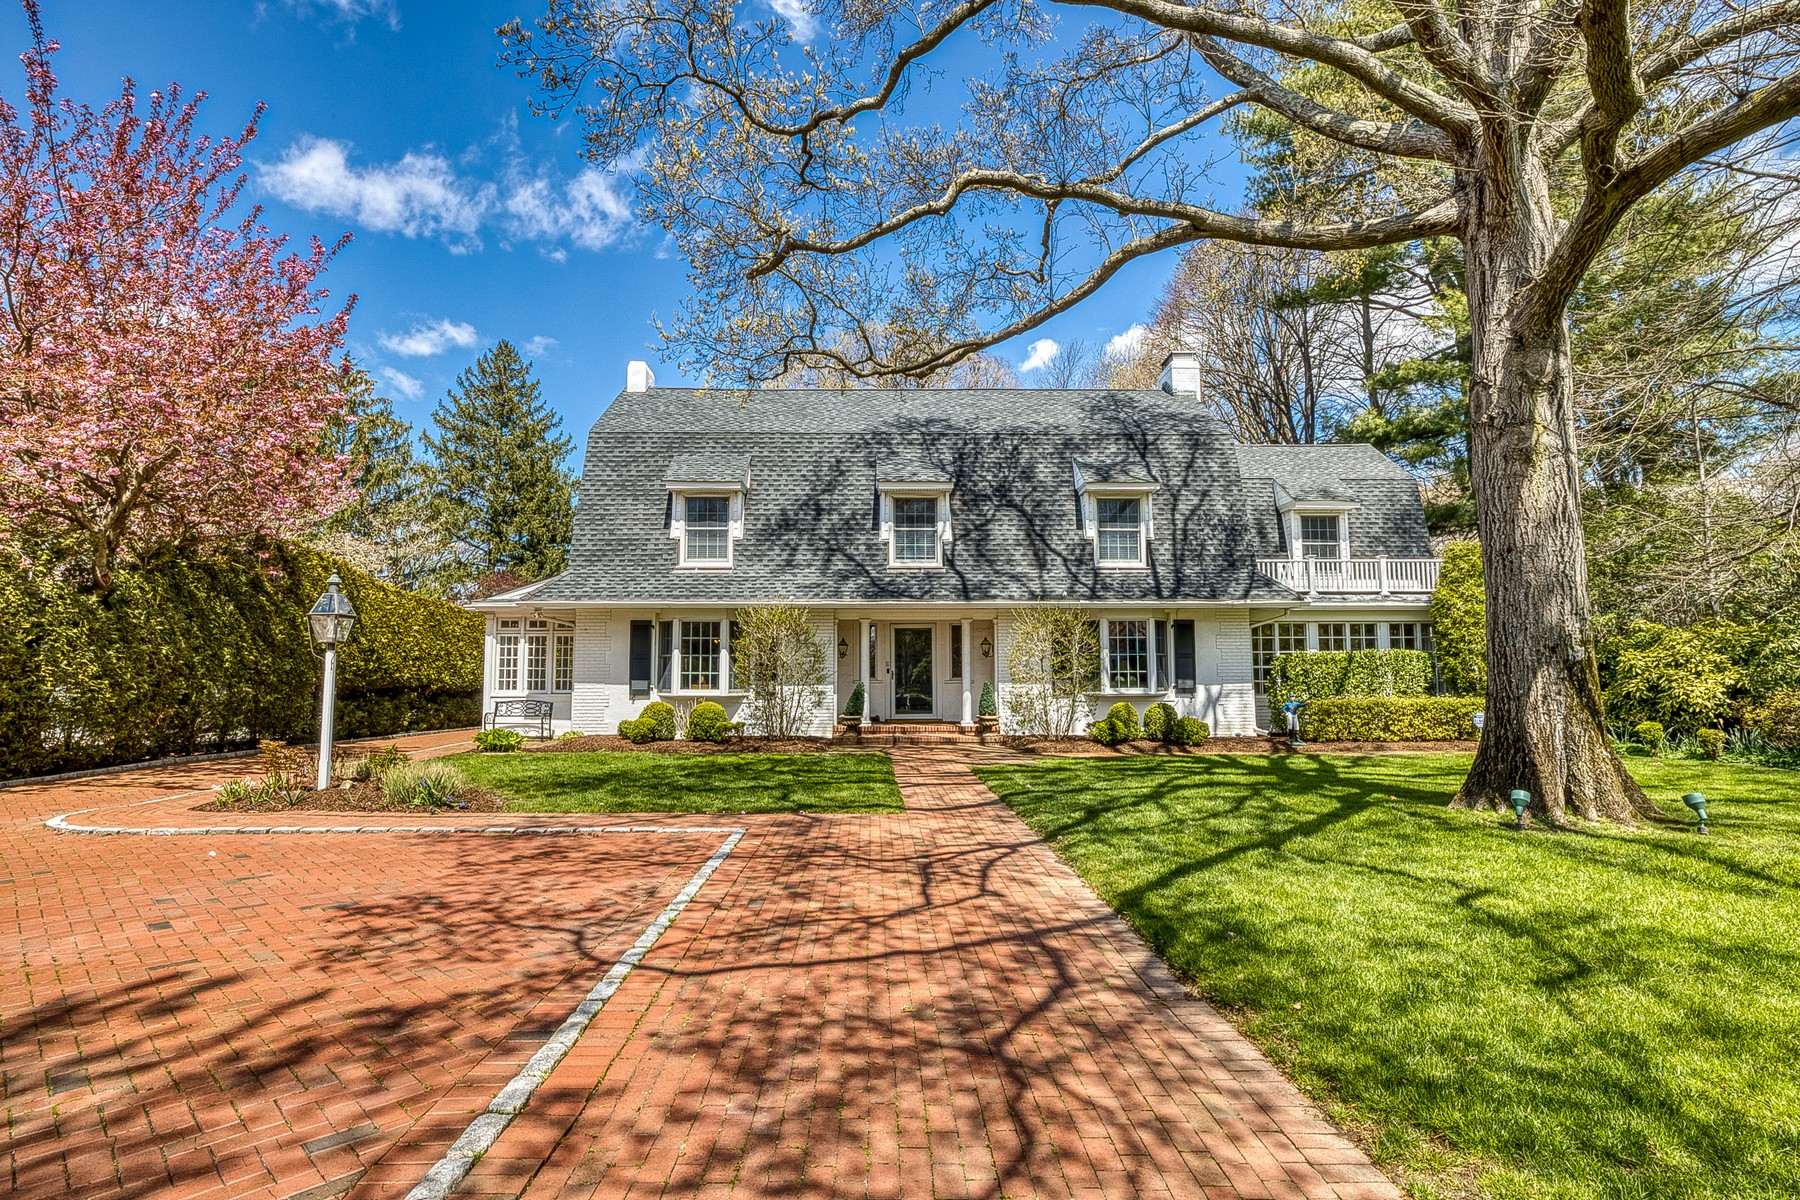 Single Family Homes for Active at Garden City 407 Stewart Garden City, New York 11530 United States